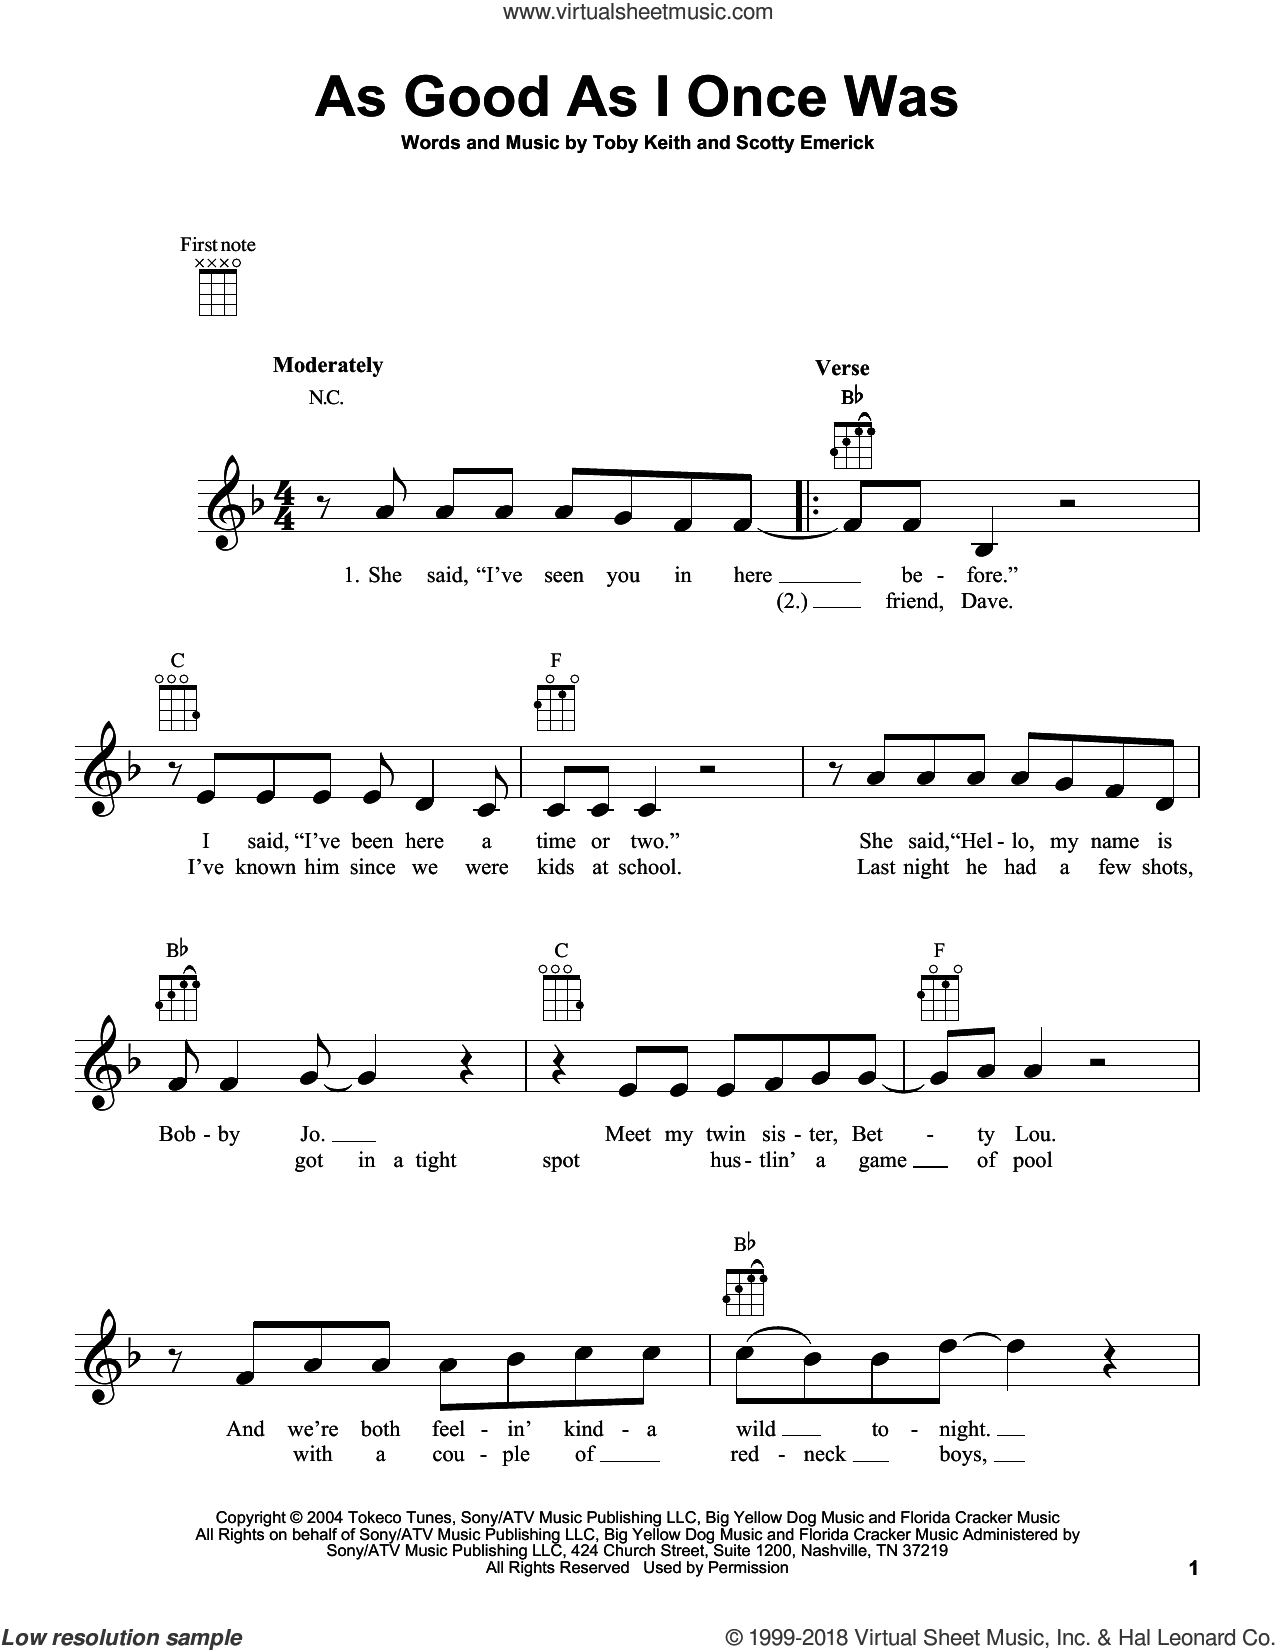 As Good As I Once Was sheet music for ukulele by Toby Keith and Scotty Emerick, intermediate skill level